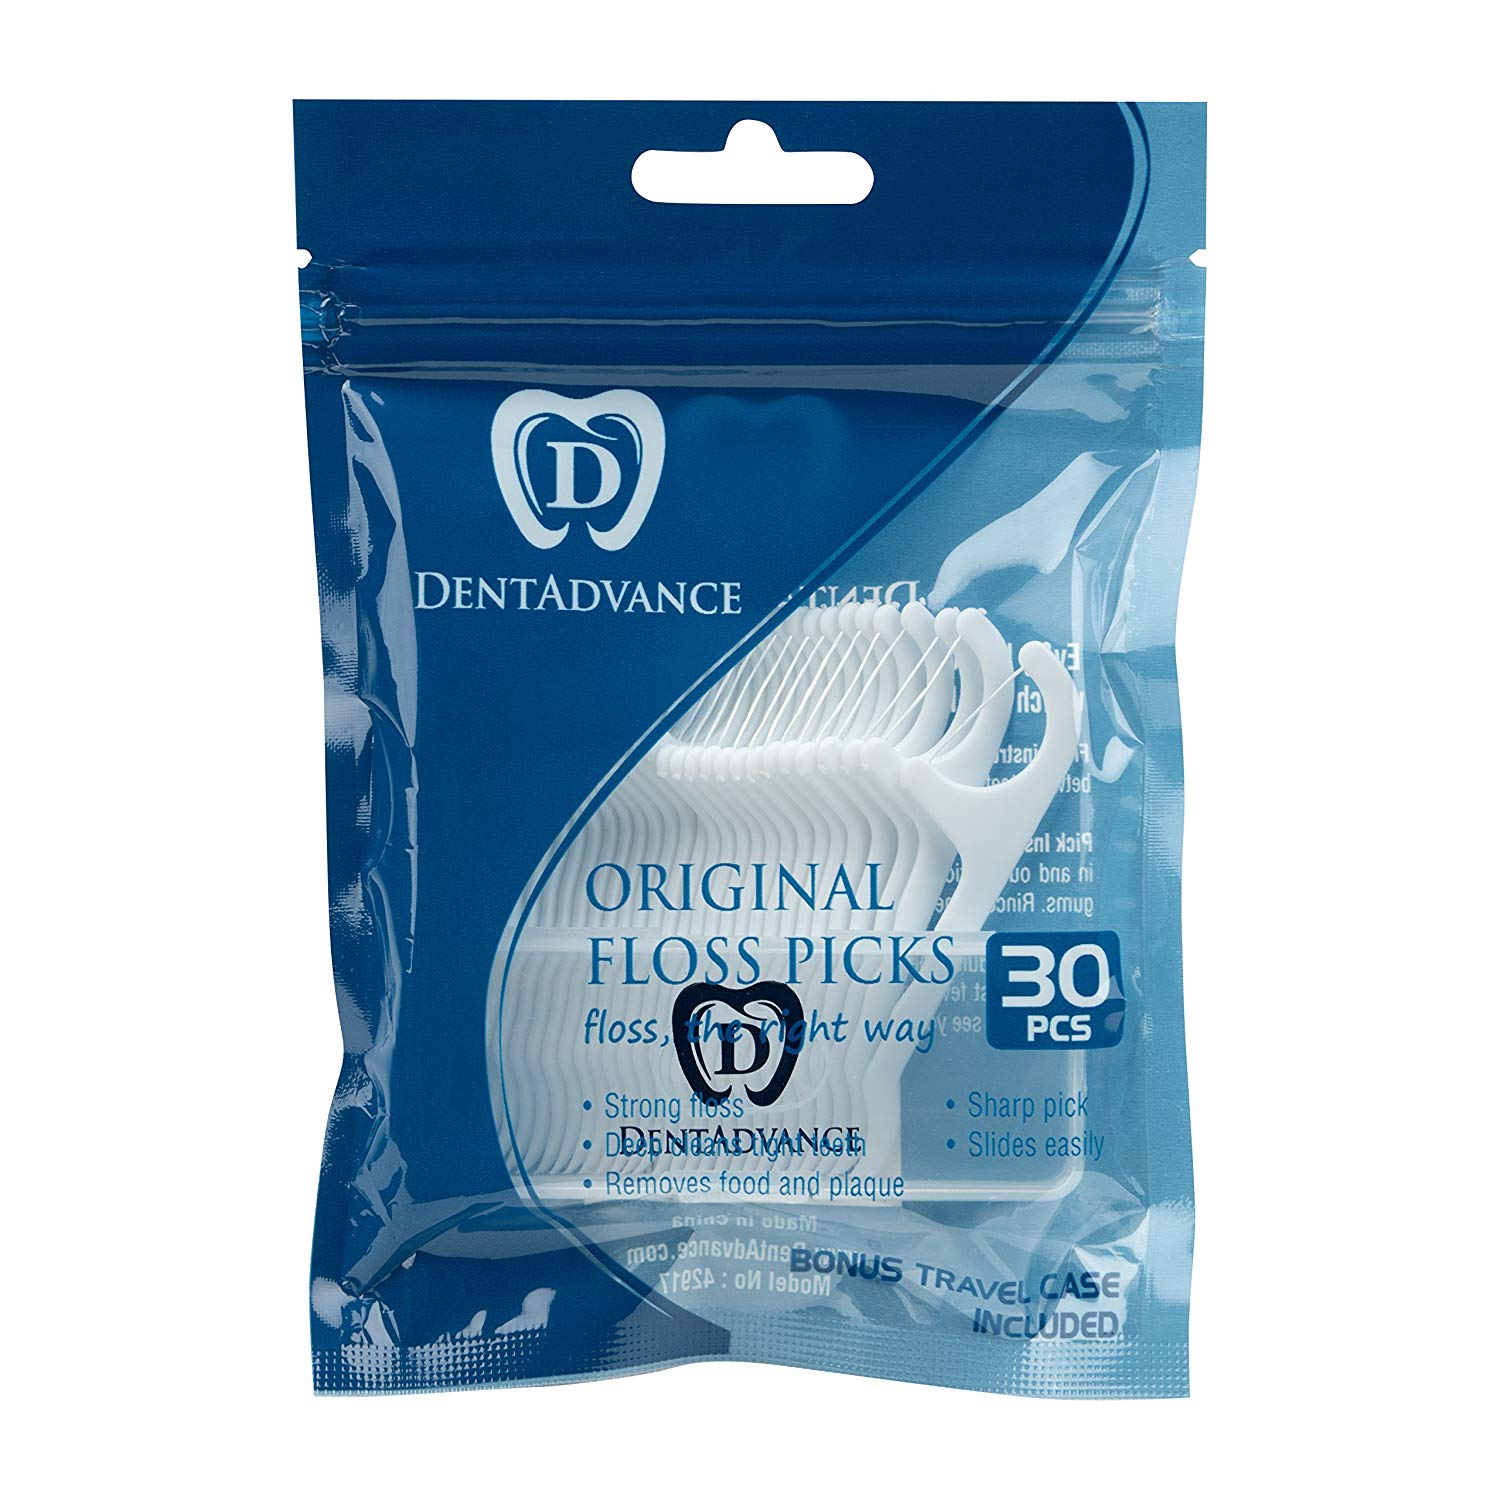 Floss Picks by DentAdvance: Interdental & Gum Cleaning Floss Picks For Plaque Removal & Oral Hygiene, Easy Reach & Deep Cleansing